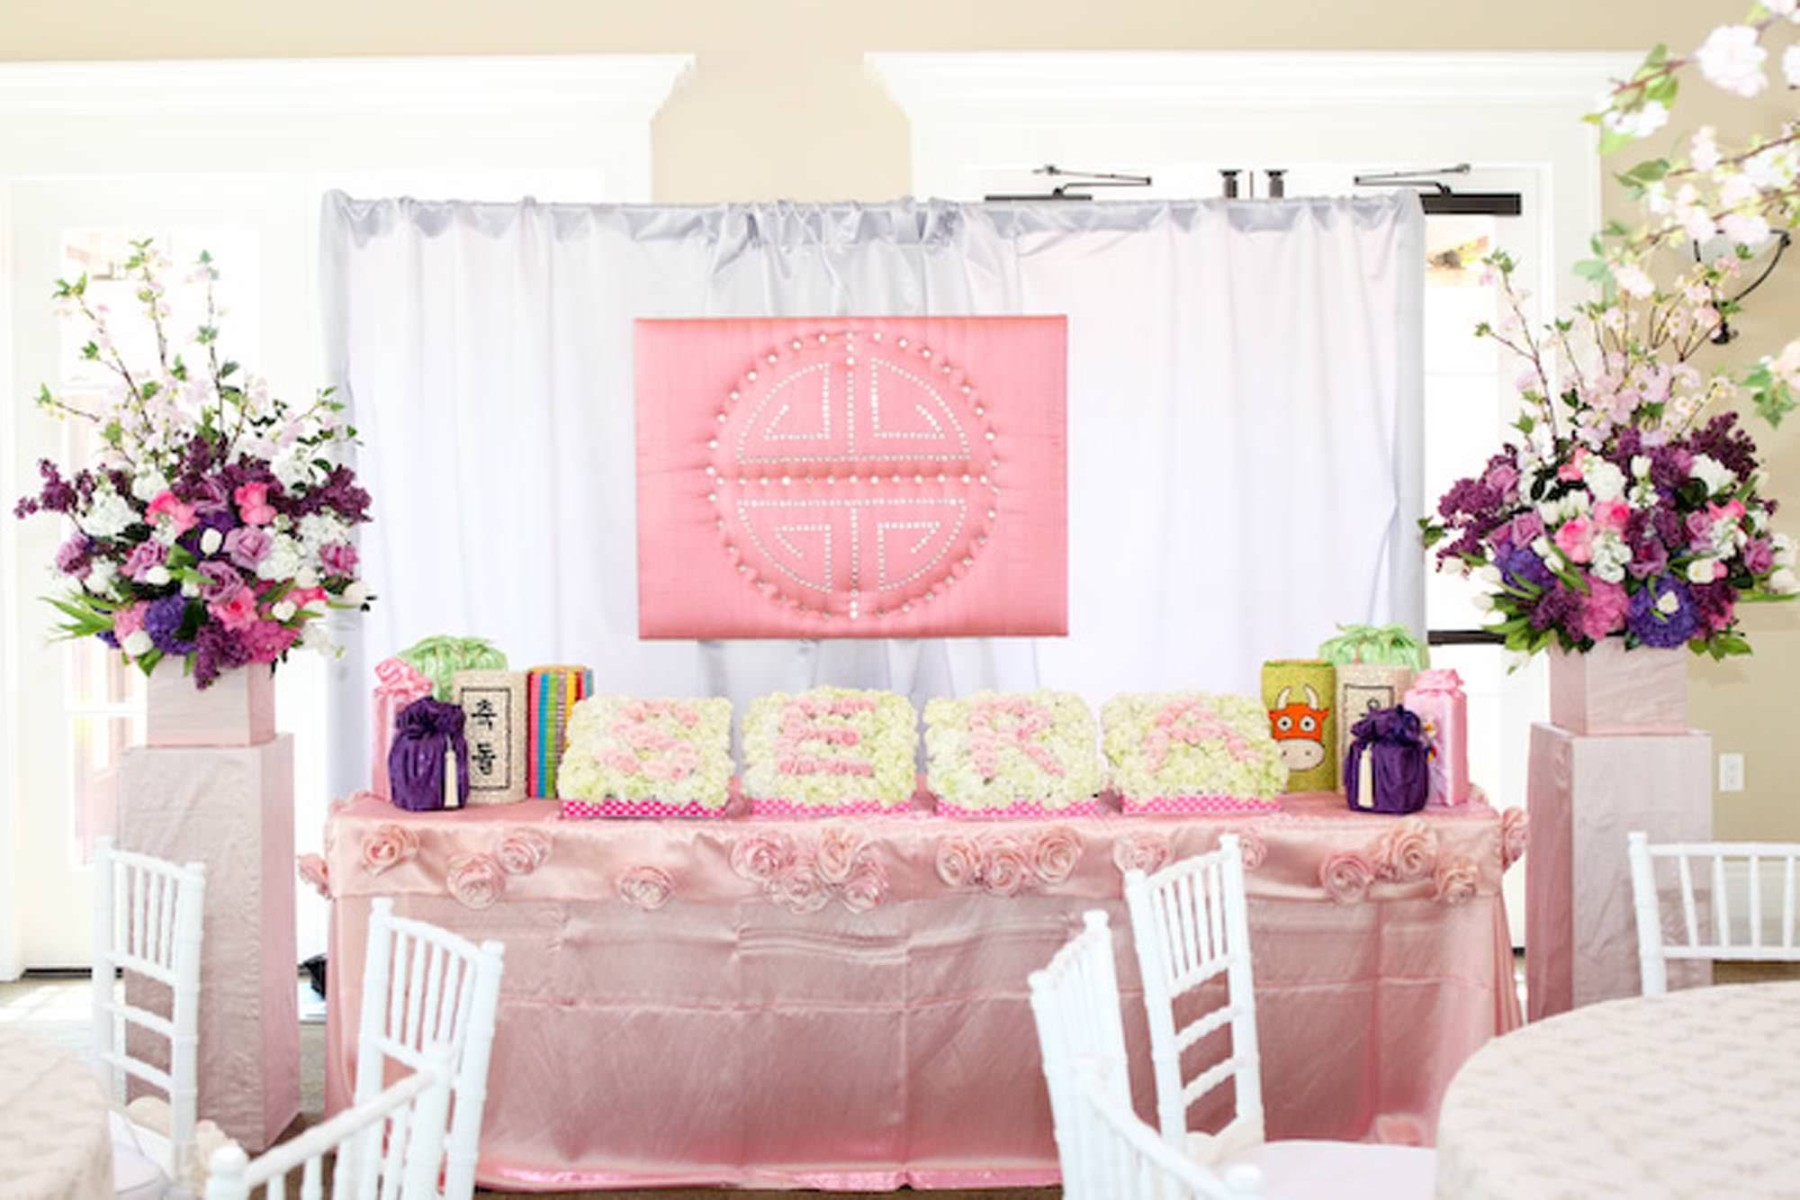 nisies-enchanted-florist-orange-county-Sophia-Kim-first-birthday-event-1